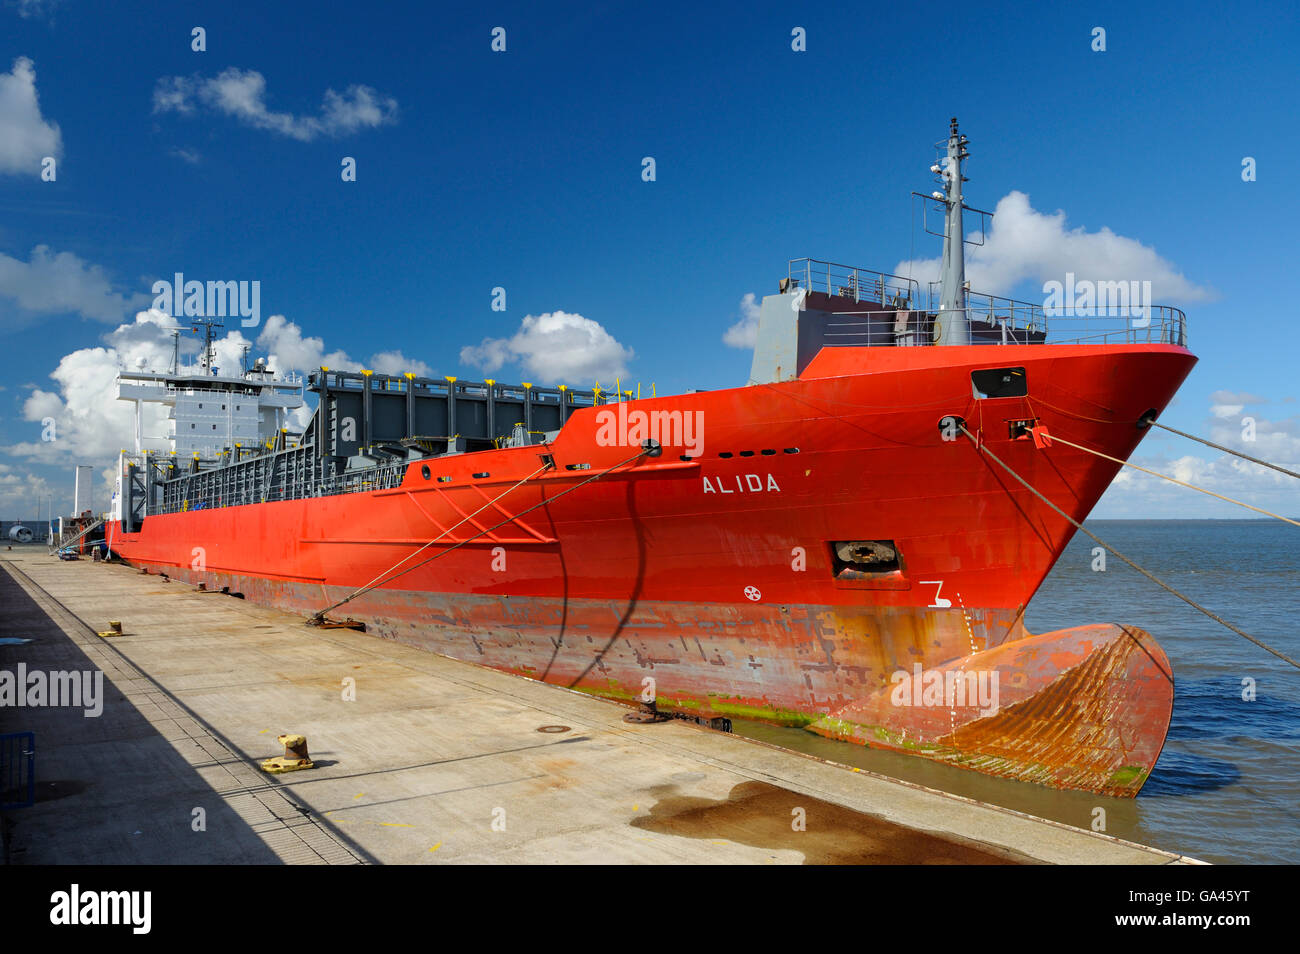 Cargo ship, harbour, Cuxhaven, Germany - Stock Image